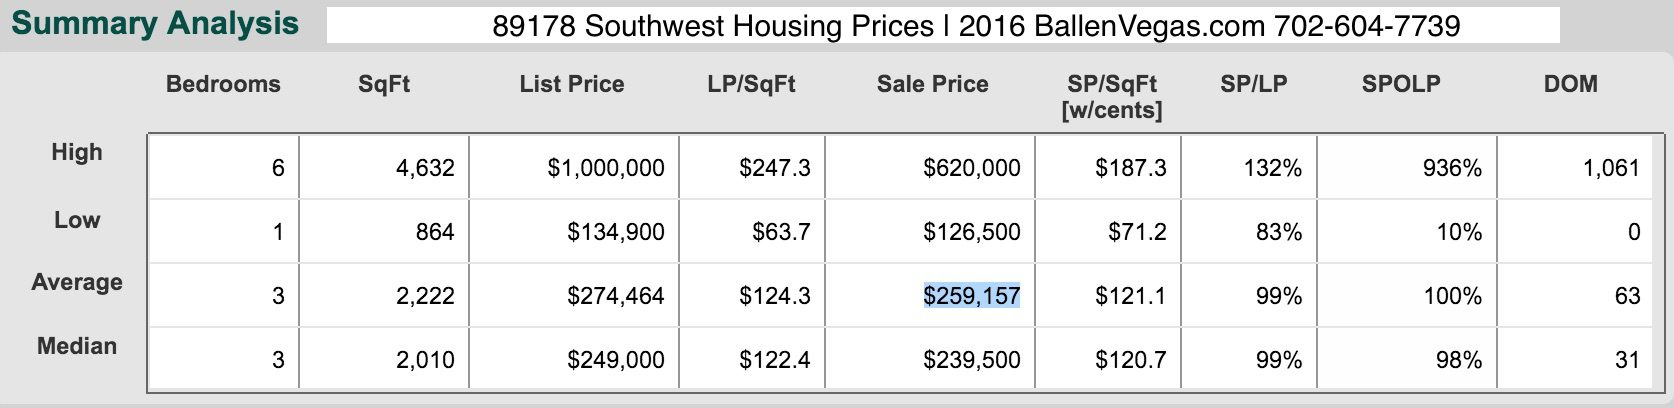 89178 Southwest Housing Prices | 2016 BallenVegas.com 702-604-7739